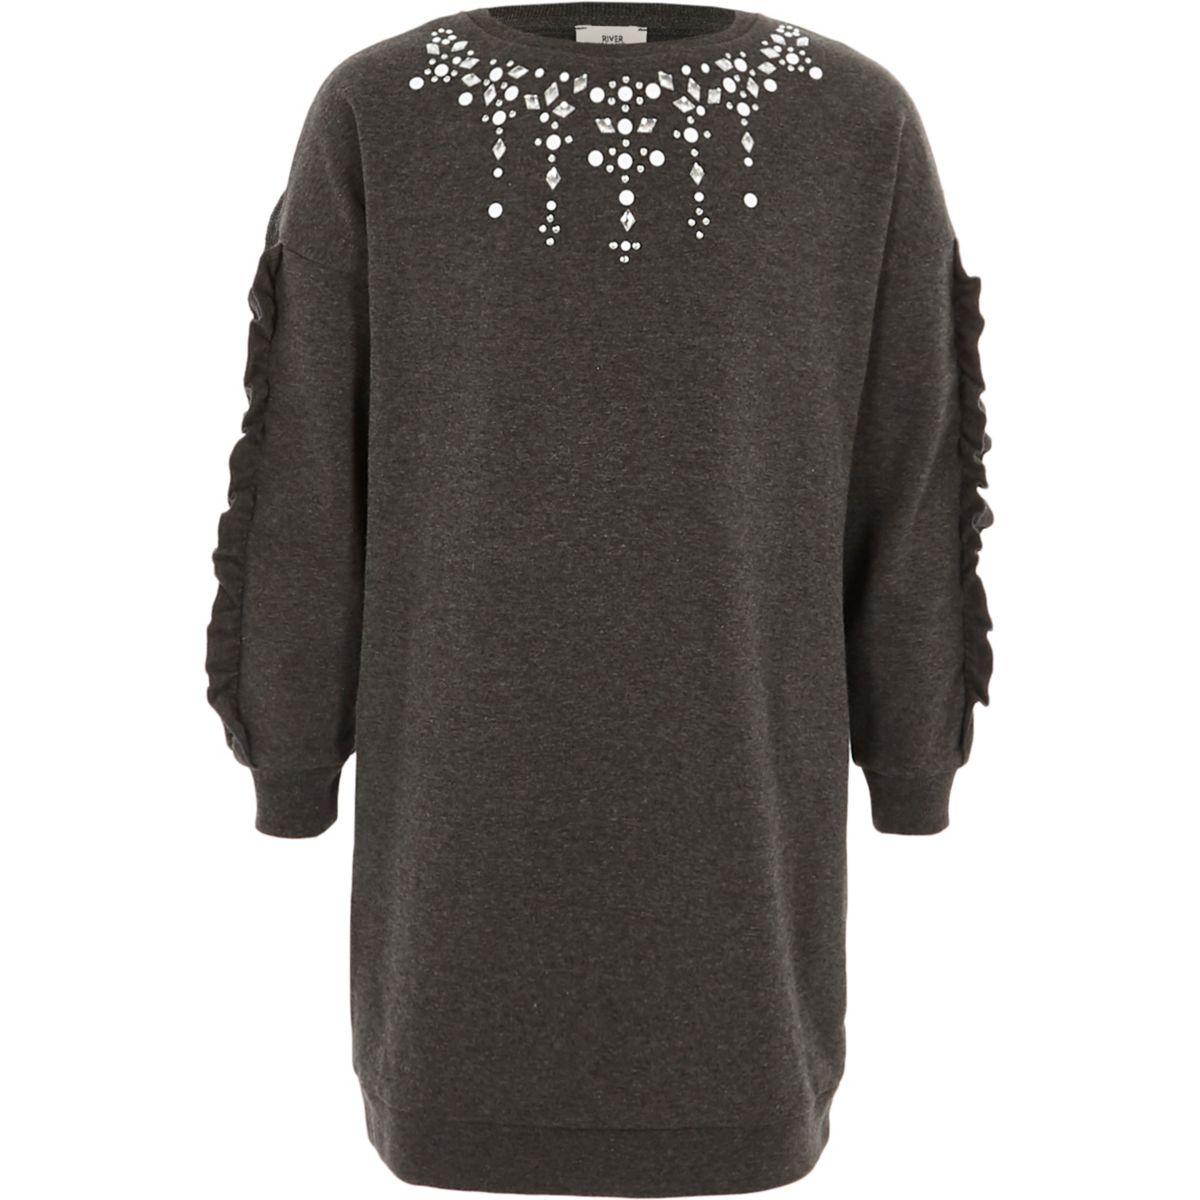 Girls dark grey embellished sweatshirt dress